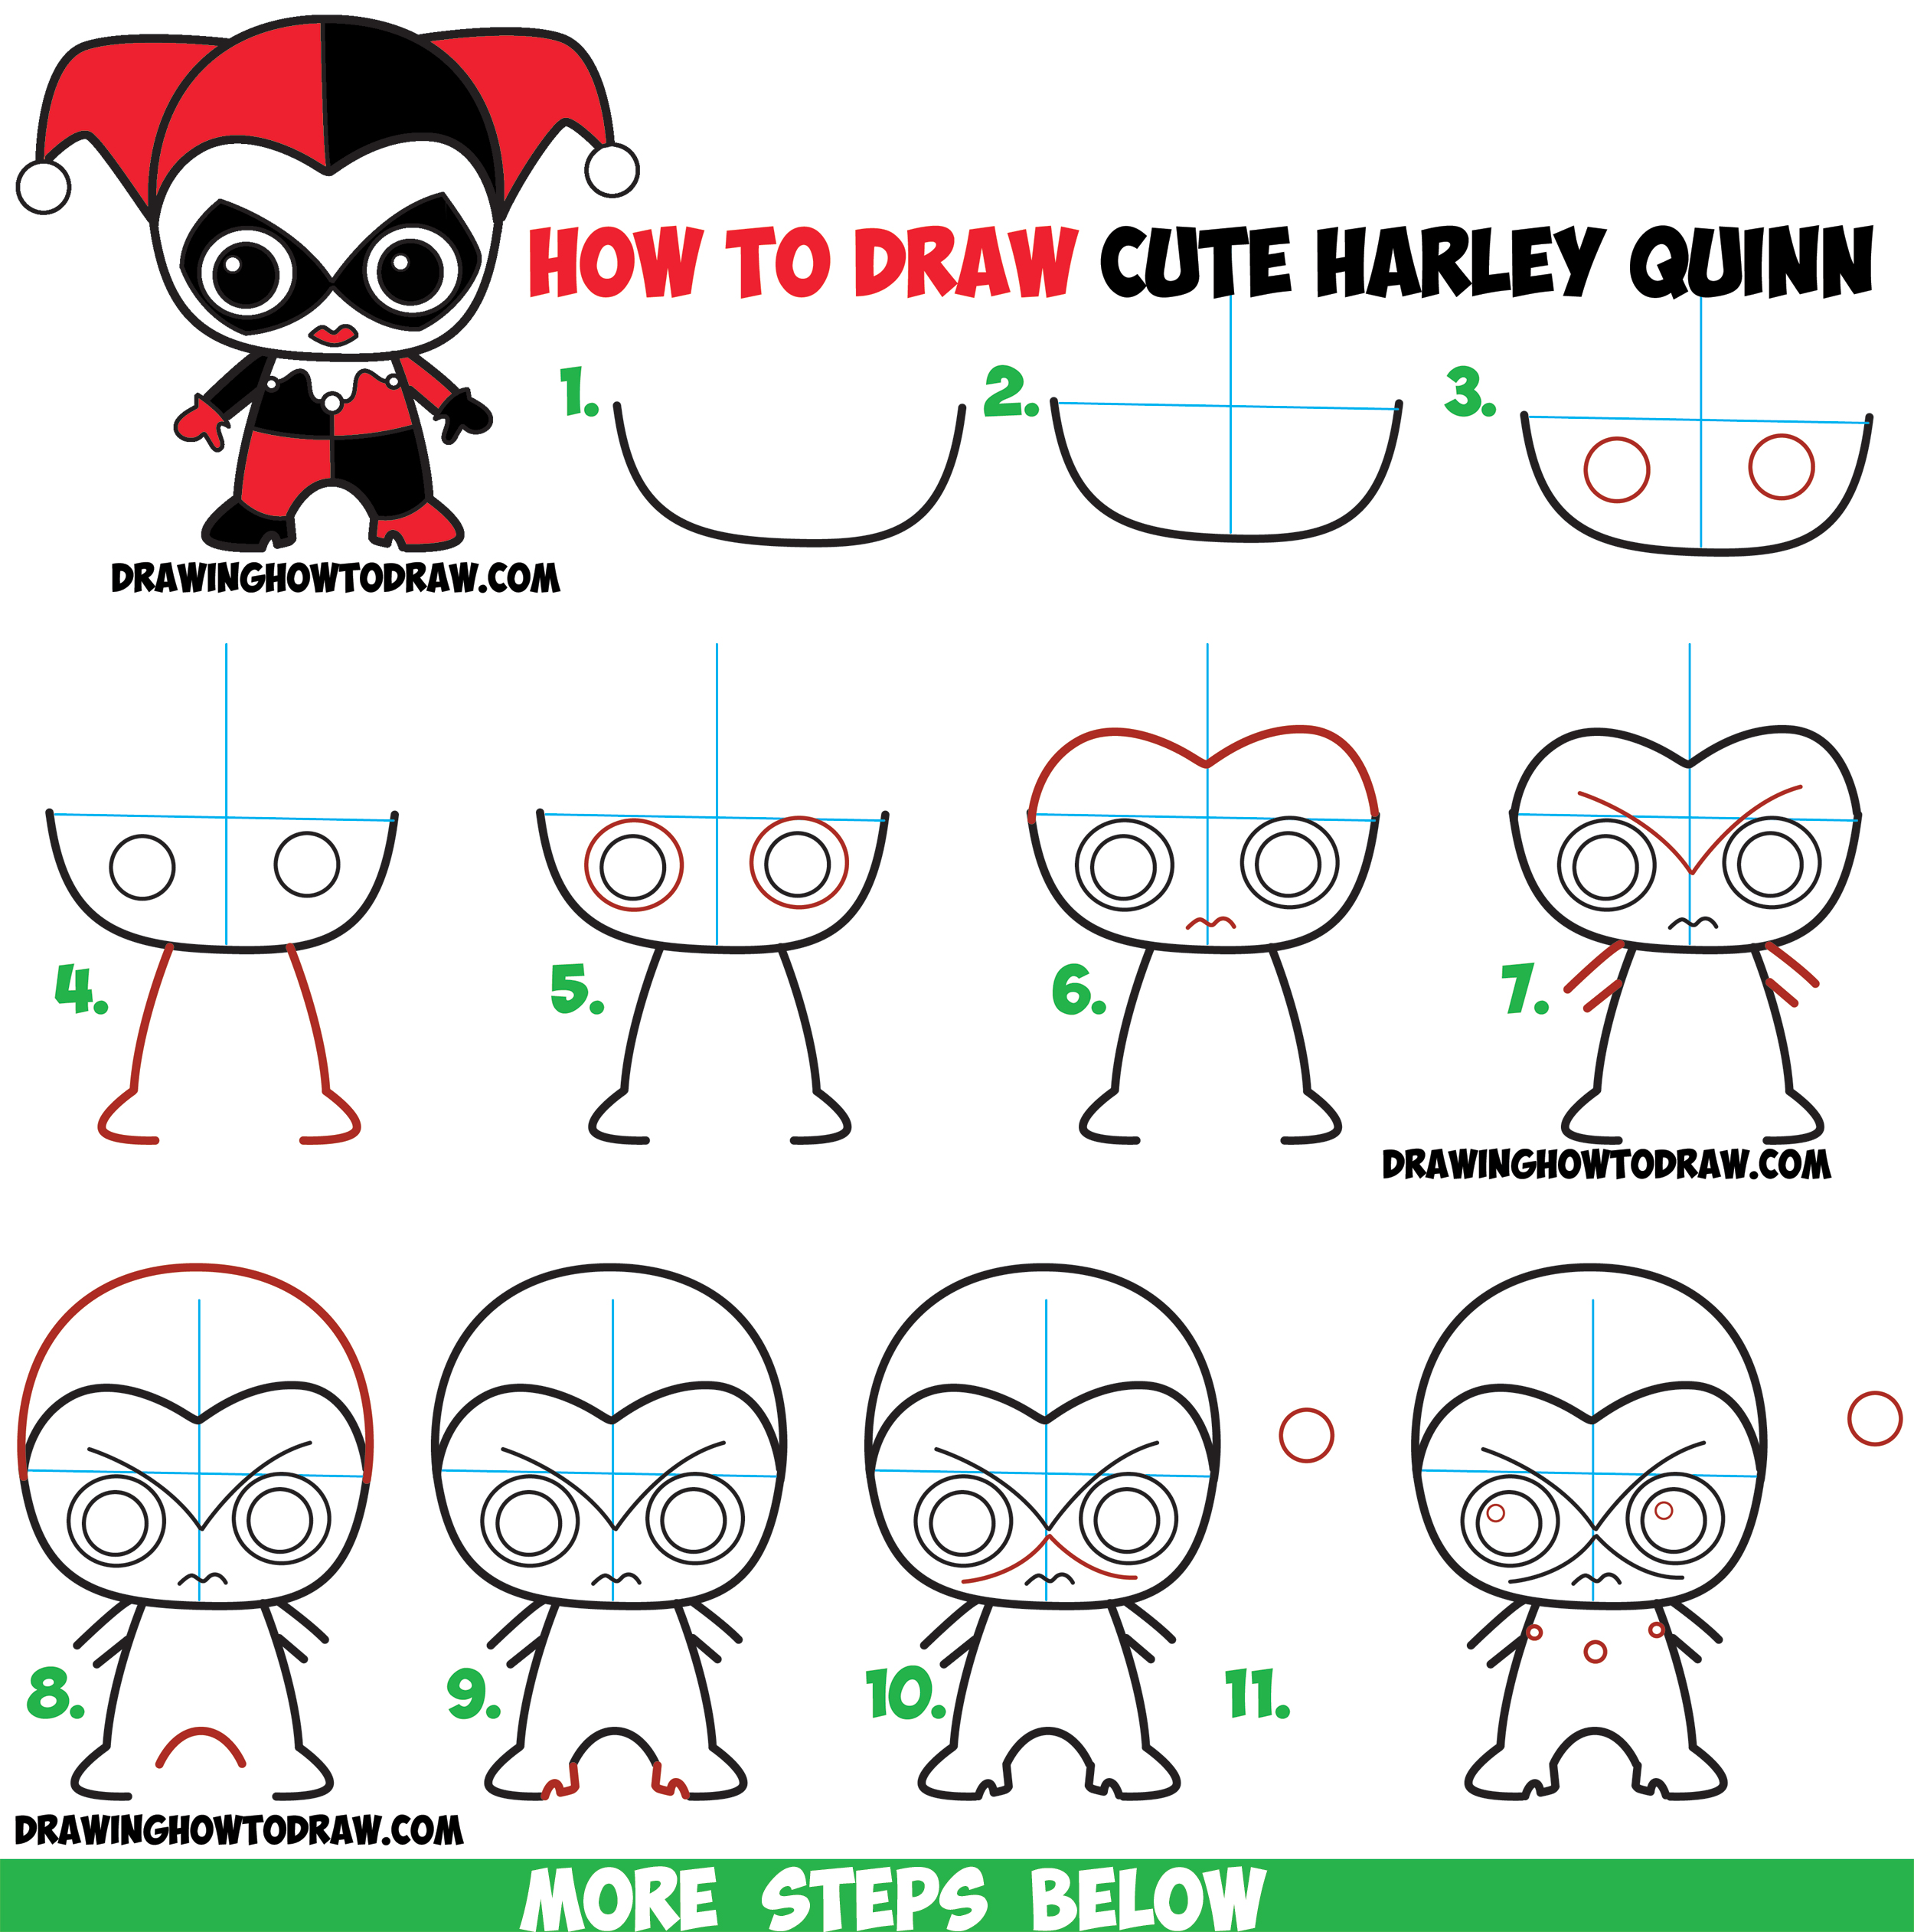 How to Draw Cute Chibi Harley Quinn from DC Comics in Easy Step by Step Drawing Tutorial for Kids & Beginners